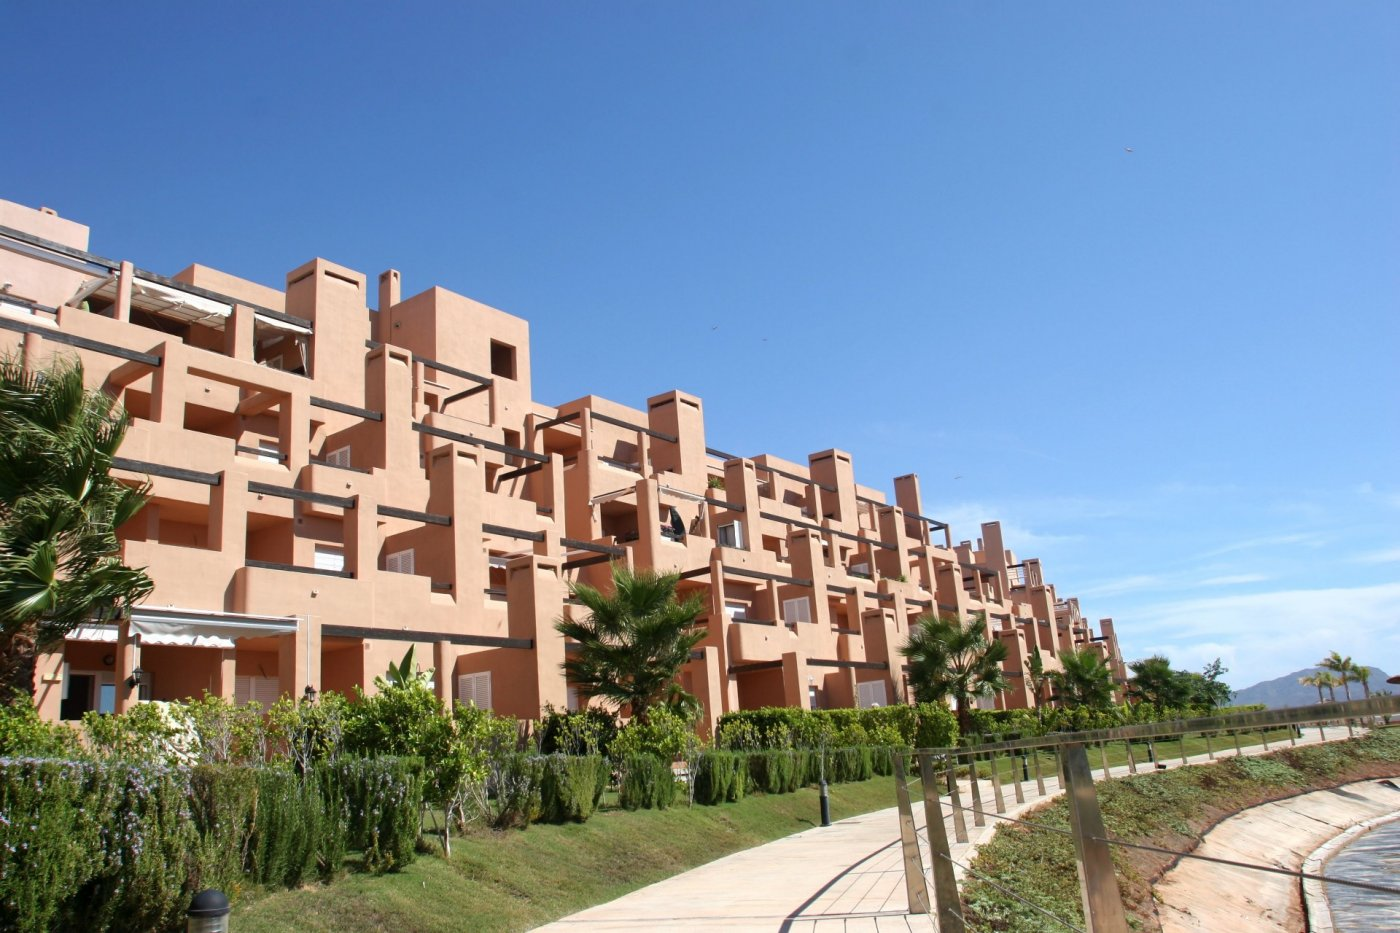 Gallery Image 37 of Bright and South-West facing 2 bedroom apartment in La Isla, with prime views and afternoon sun